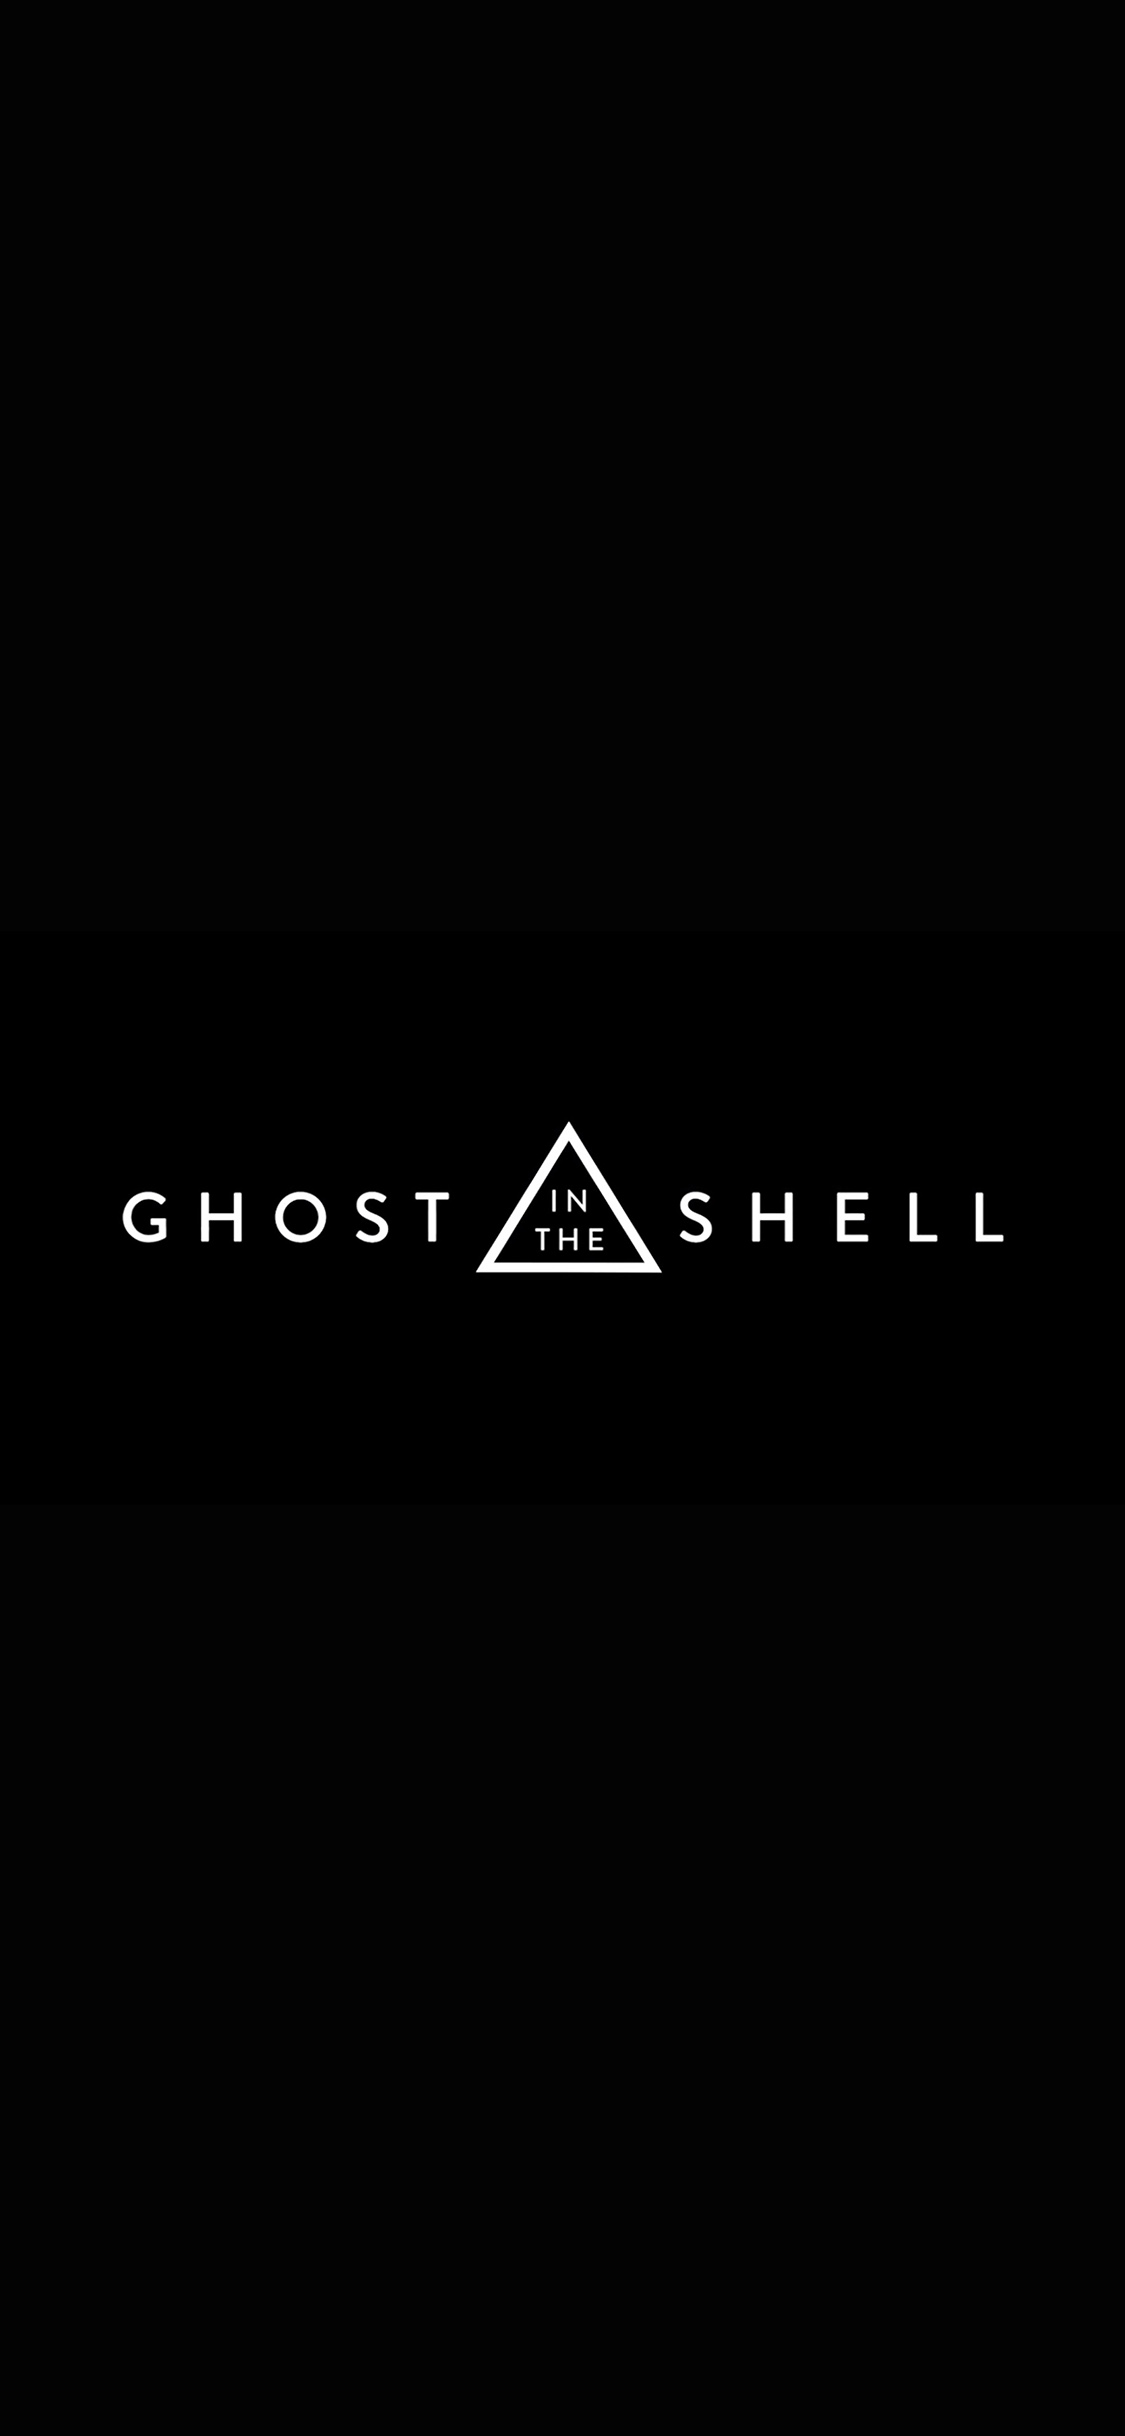 iPhoneXpapers.com-Apple-iPhone-wallpaper-av32-ghost-in-the-shell-dark-logo-film-illustration-art